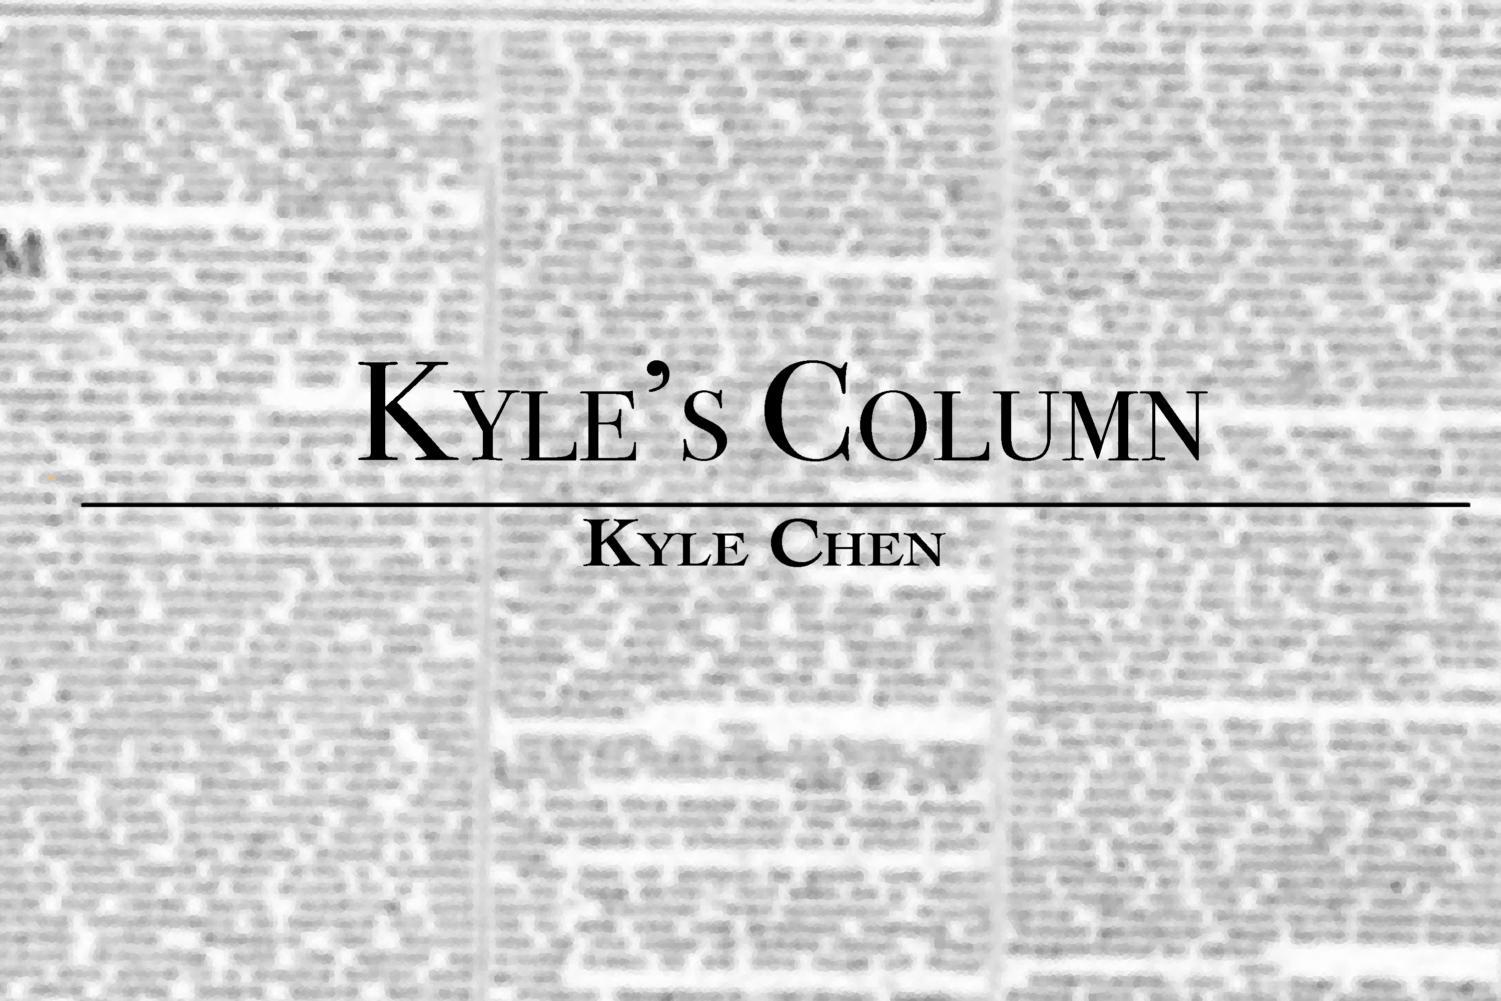 In the latest installment of Kyle's Column, WSPN's Opinions Editor Kyle Chen discusses the implications of the racist and anti-semitic graffiti discovered on the wall of the History wing bathroom.